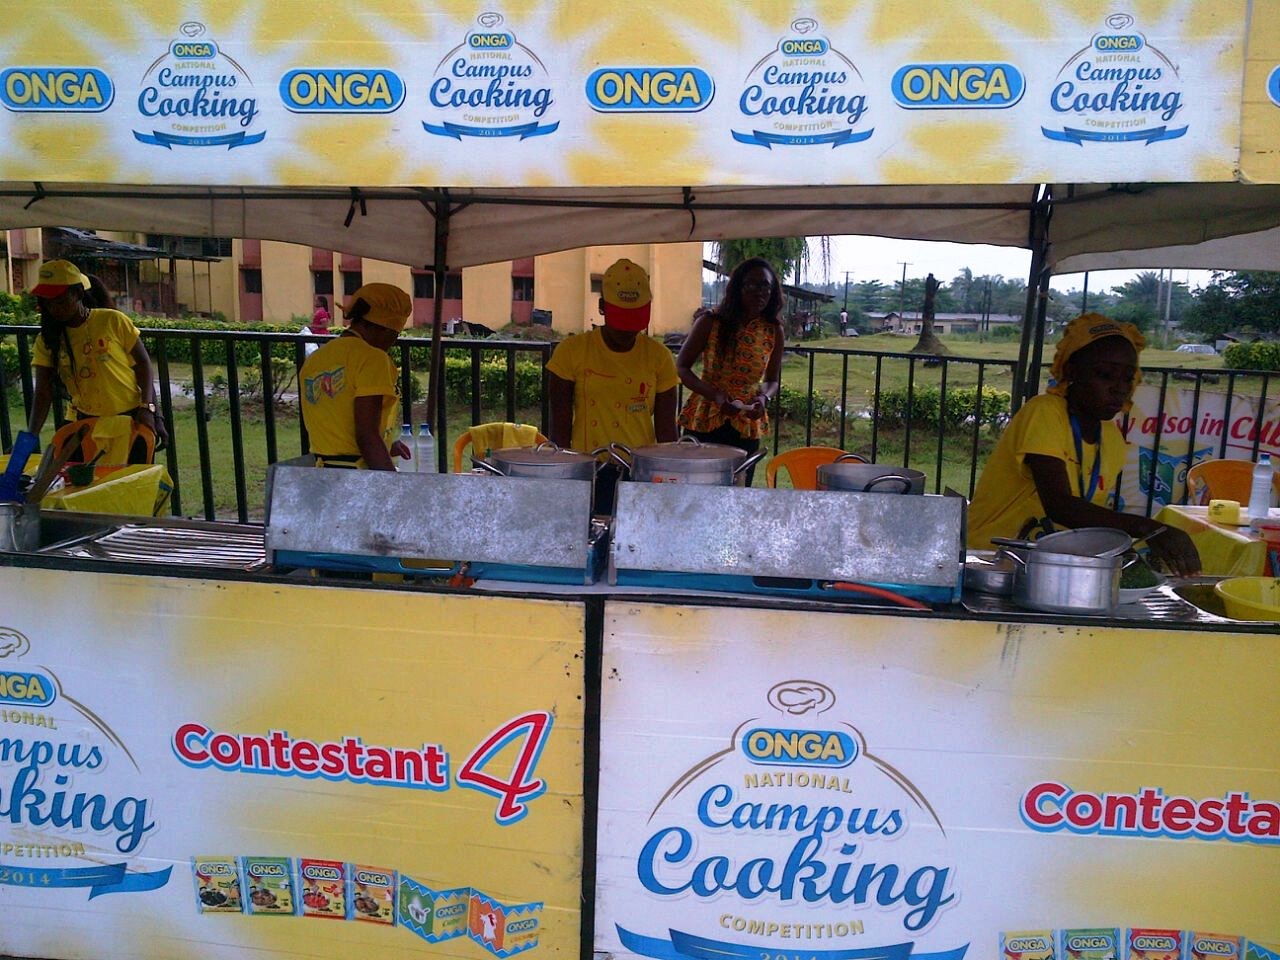 Contestants displaying their culinary skills